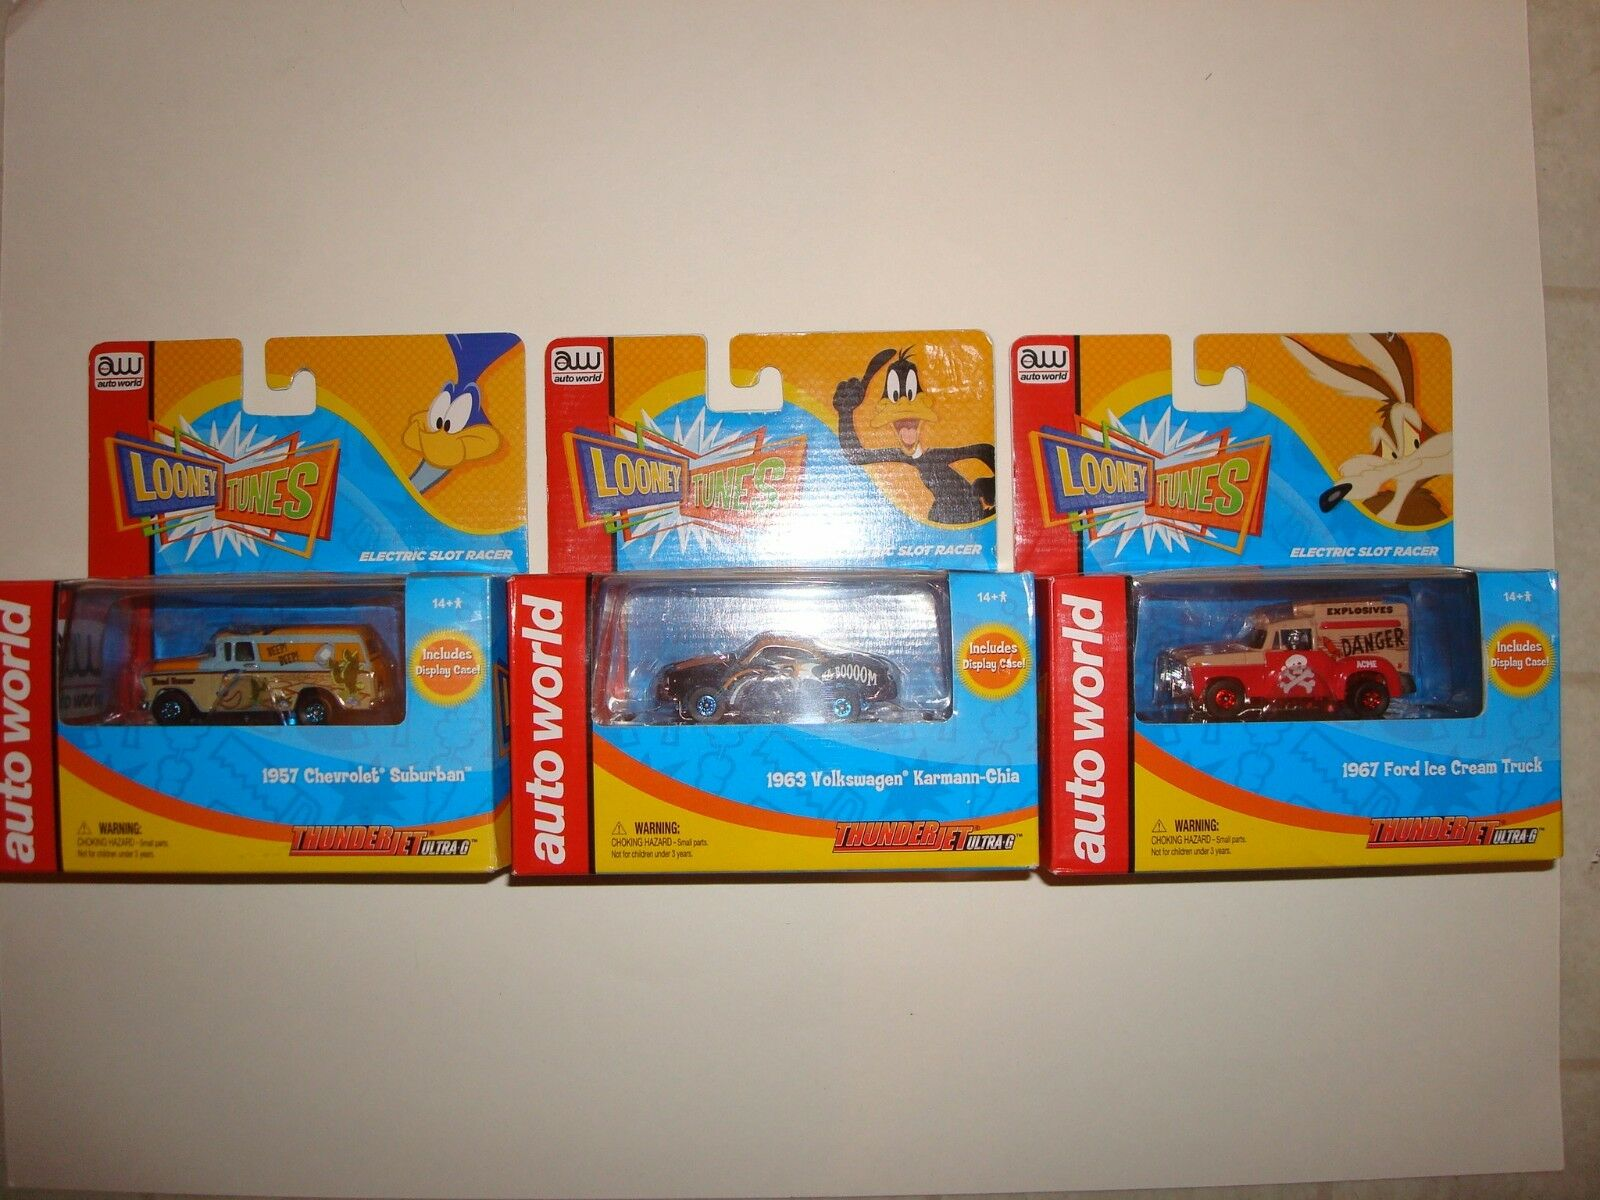 AW Auto World Looney Tunes Series Slot Cars Lot Set of (3) Different New in Box